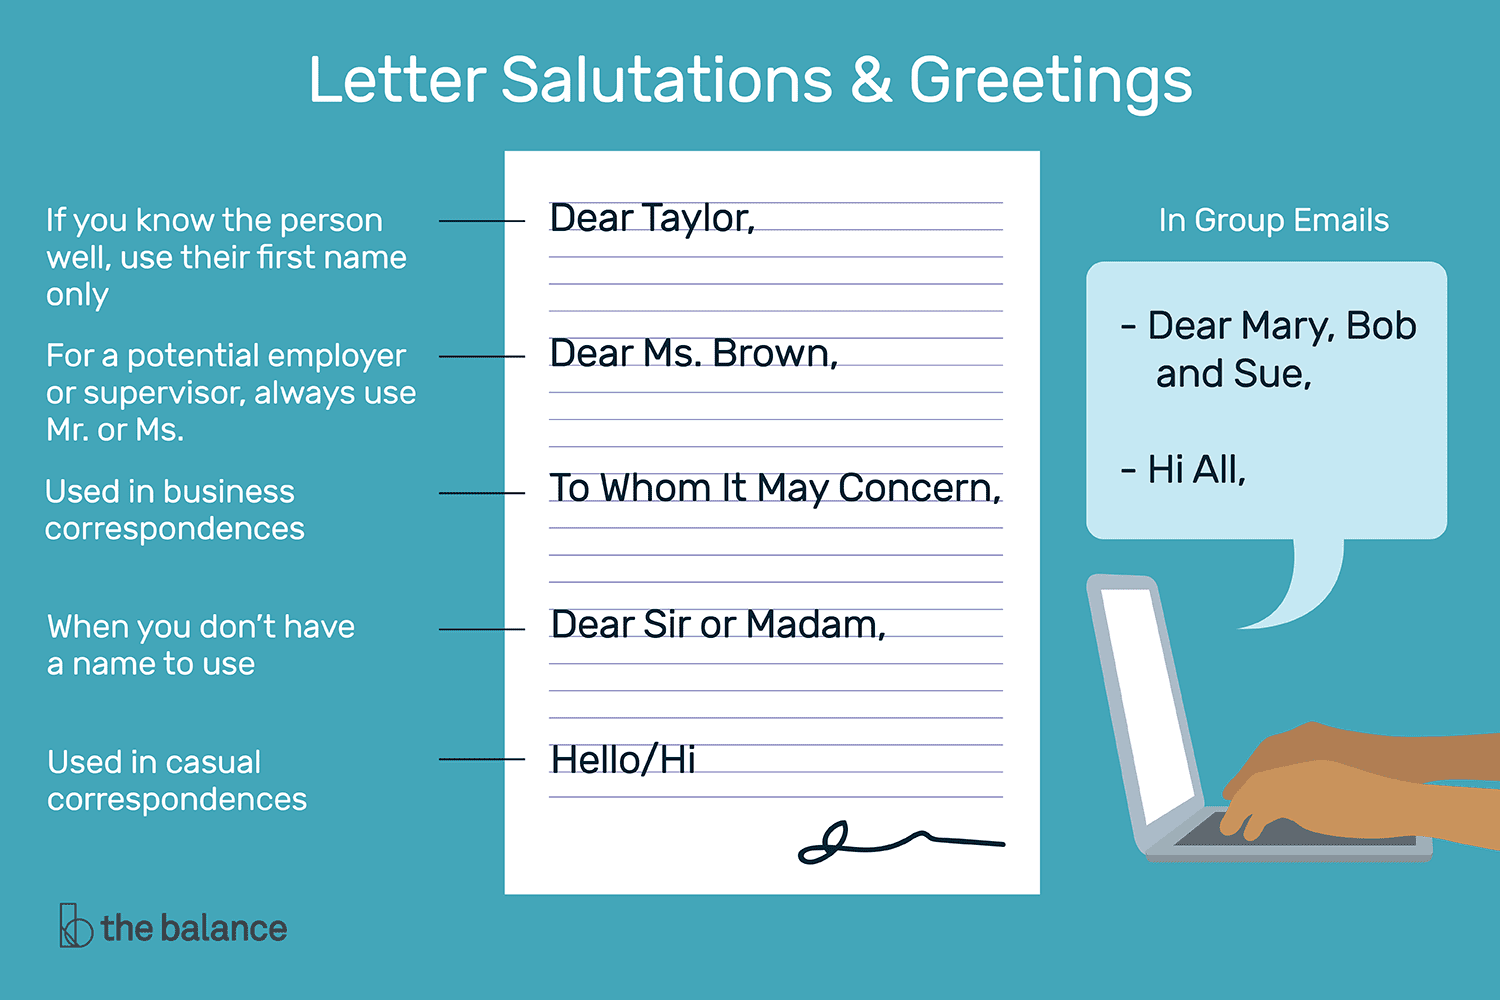 examples of letter greetings